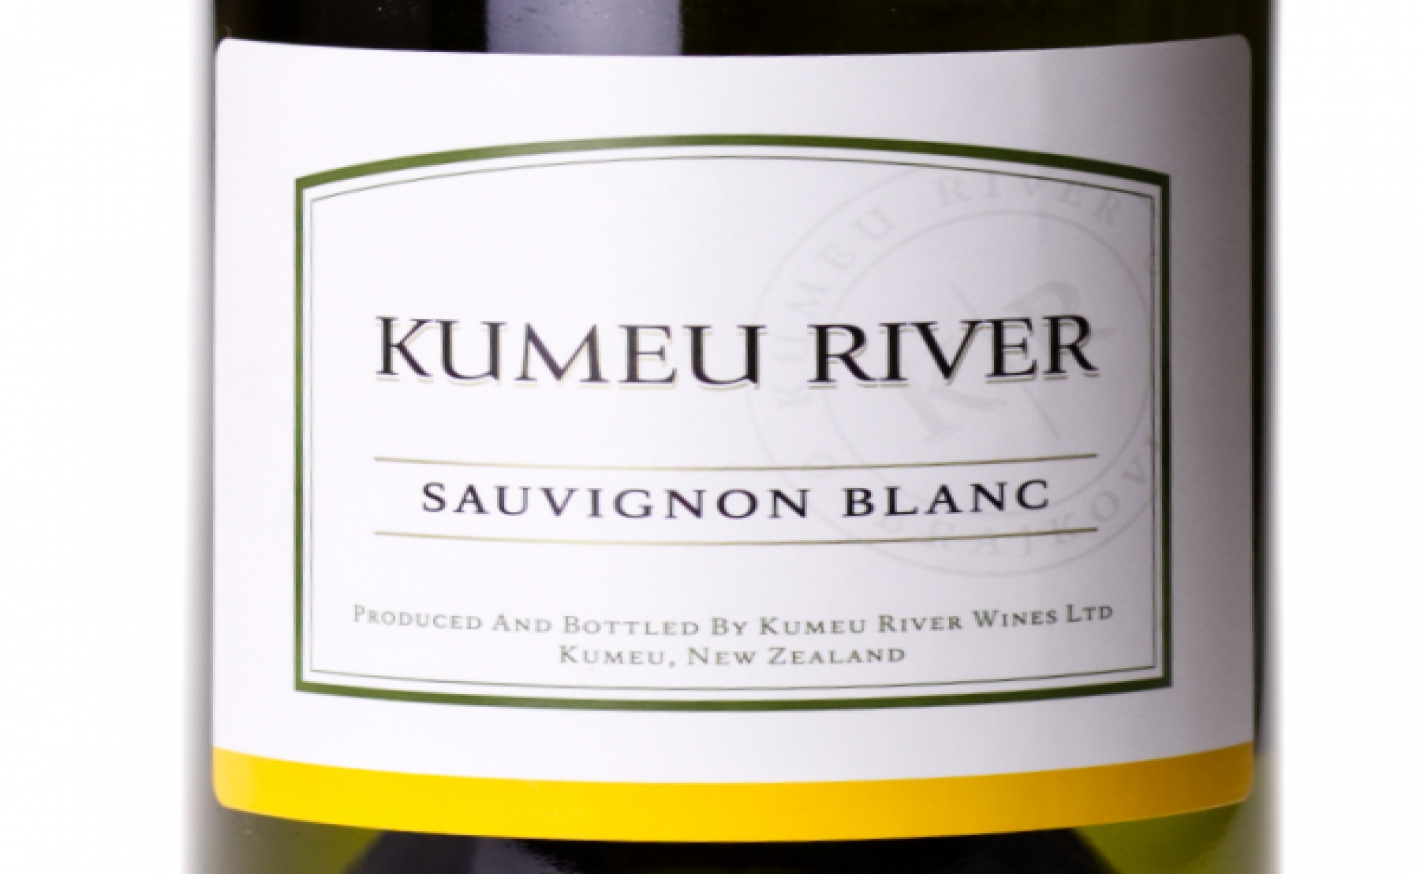 Kumeu River: Michael Brajkovich & Co Return to Making Sauvignon Blanc